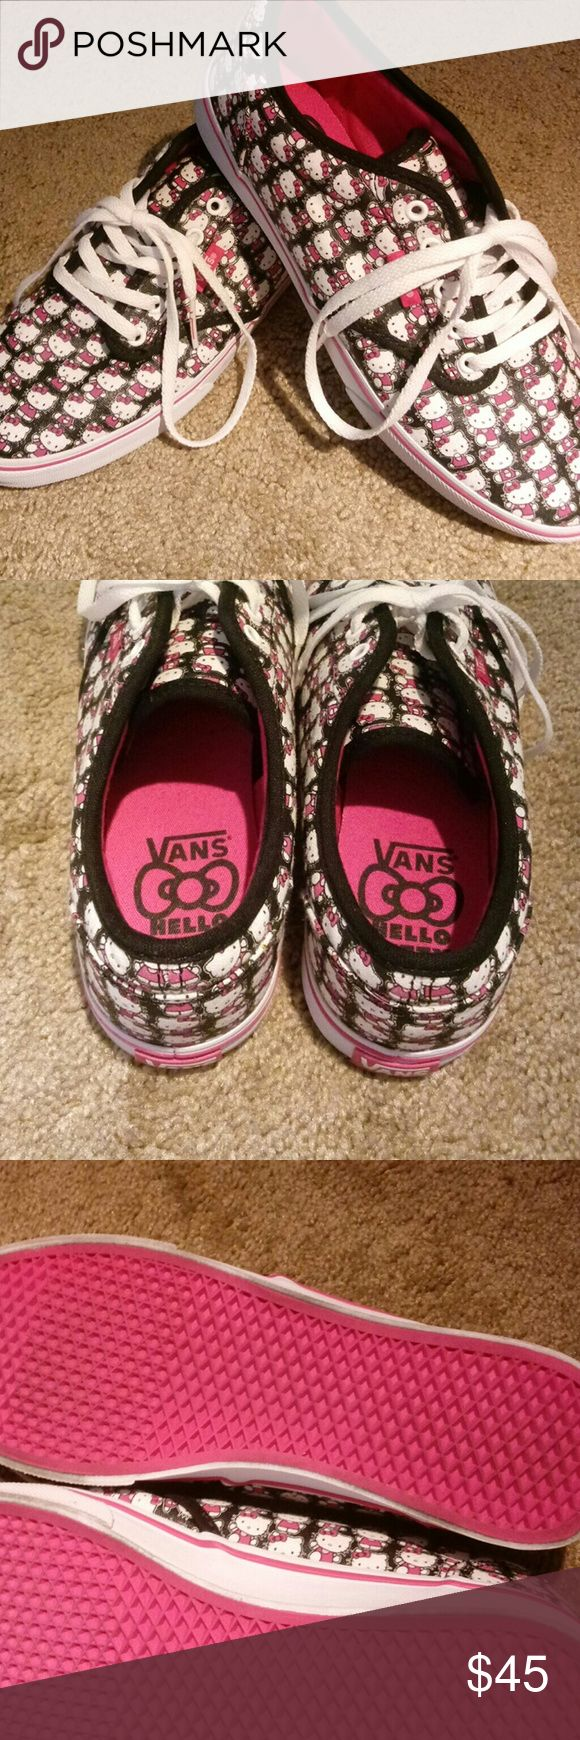 Hello Kitty Vans!! Super cute vintage style!! Mint condition. Original Vans shoelaces TOO! Vans Shoes Athletic Shoes